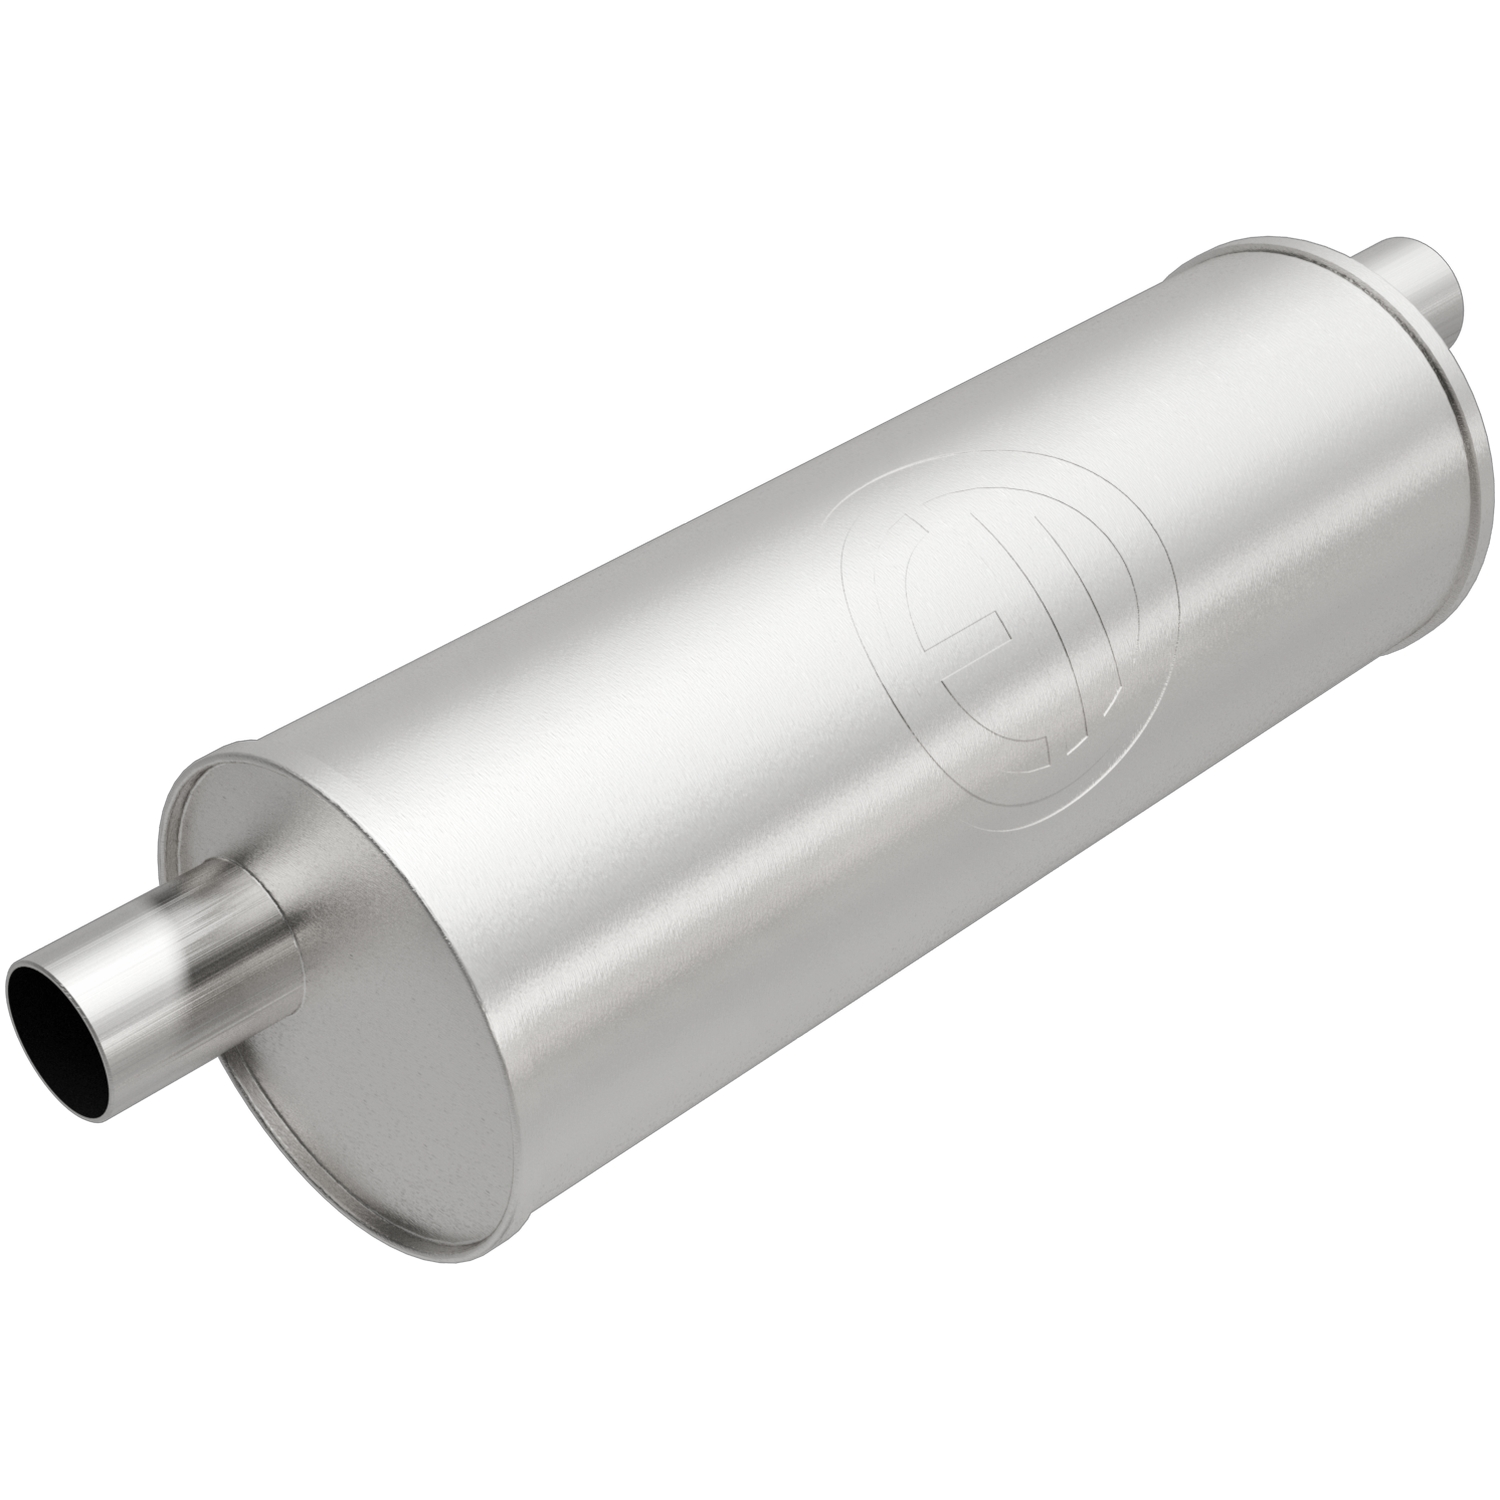 100-1743 Bosal USA Exhaust Muffler Aluminized Steel Case